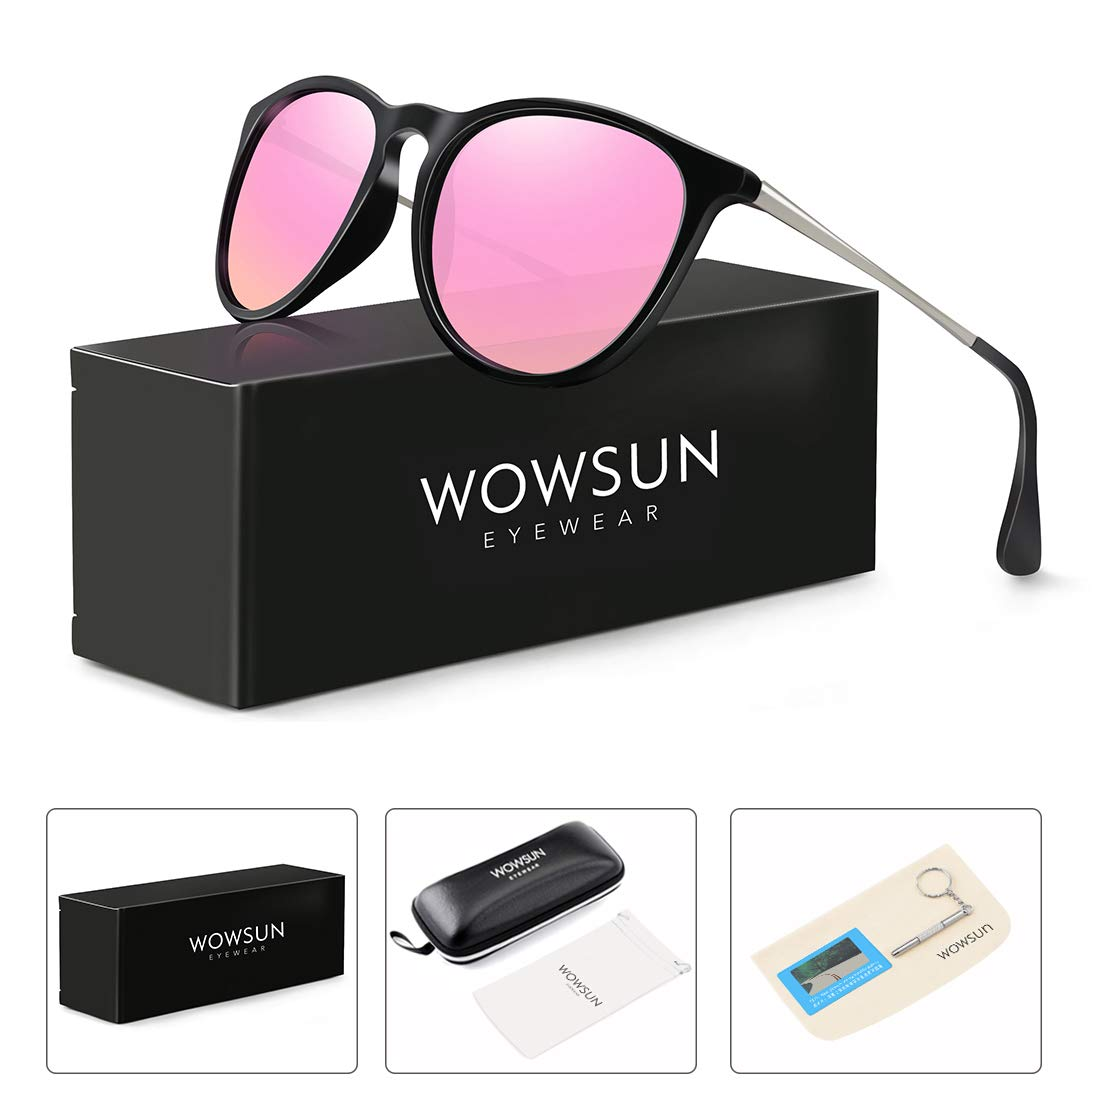 WOWSUN Polarized Sunglasses Women Vintage Retro Round Mirrored Lens Black Purple Pink